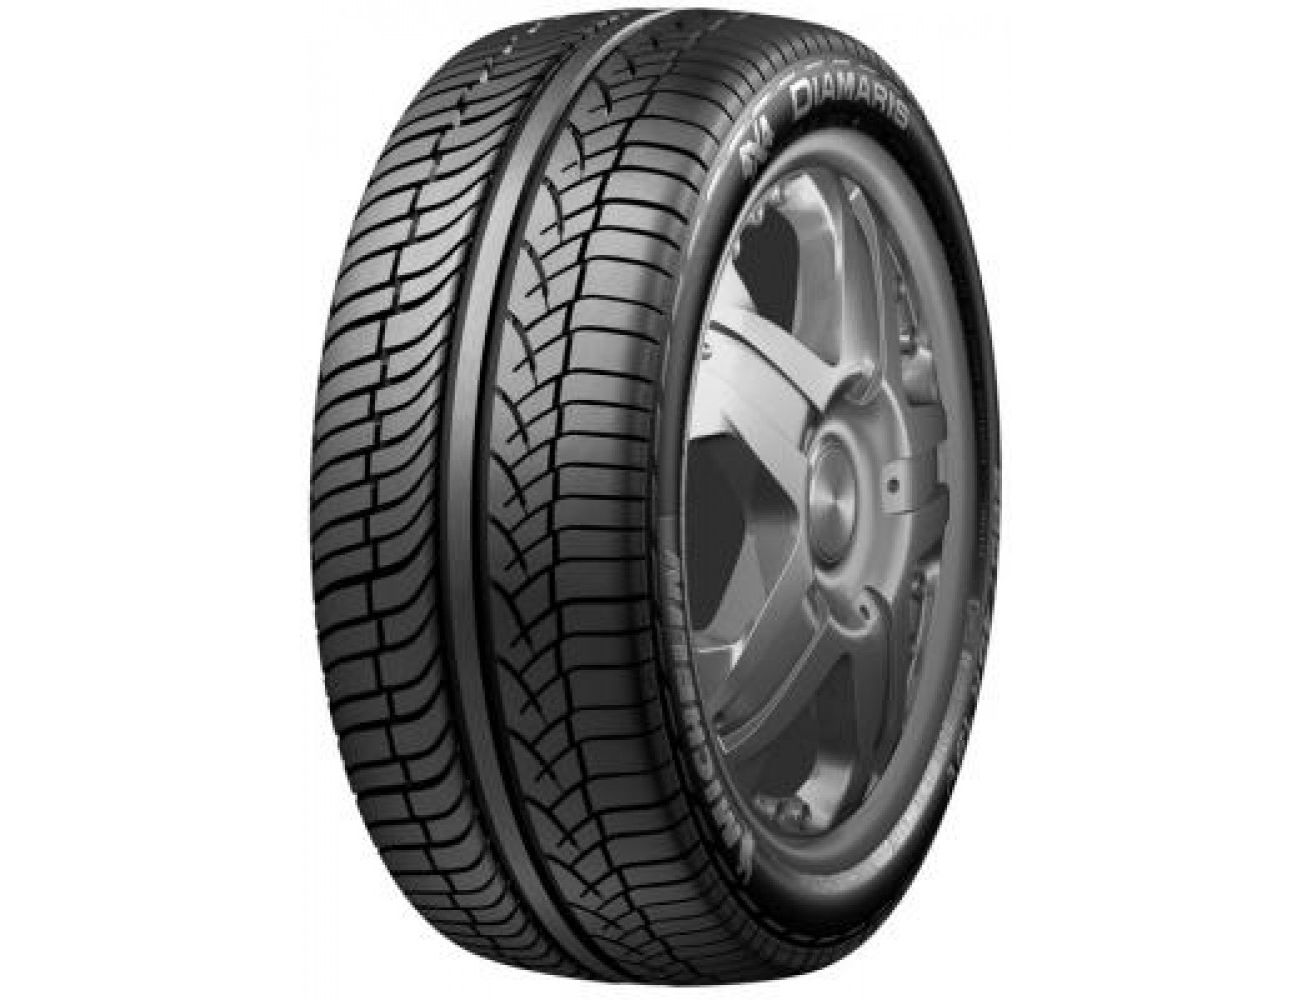 Llantas MICHELIN 4X4 DIAMARIS N1 XL 275/40 R20 Y